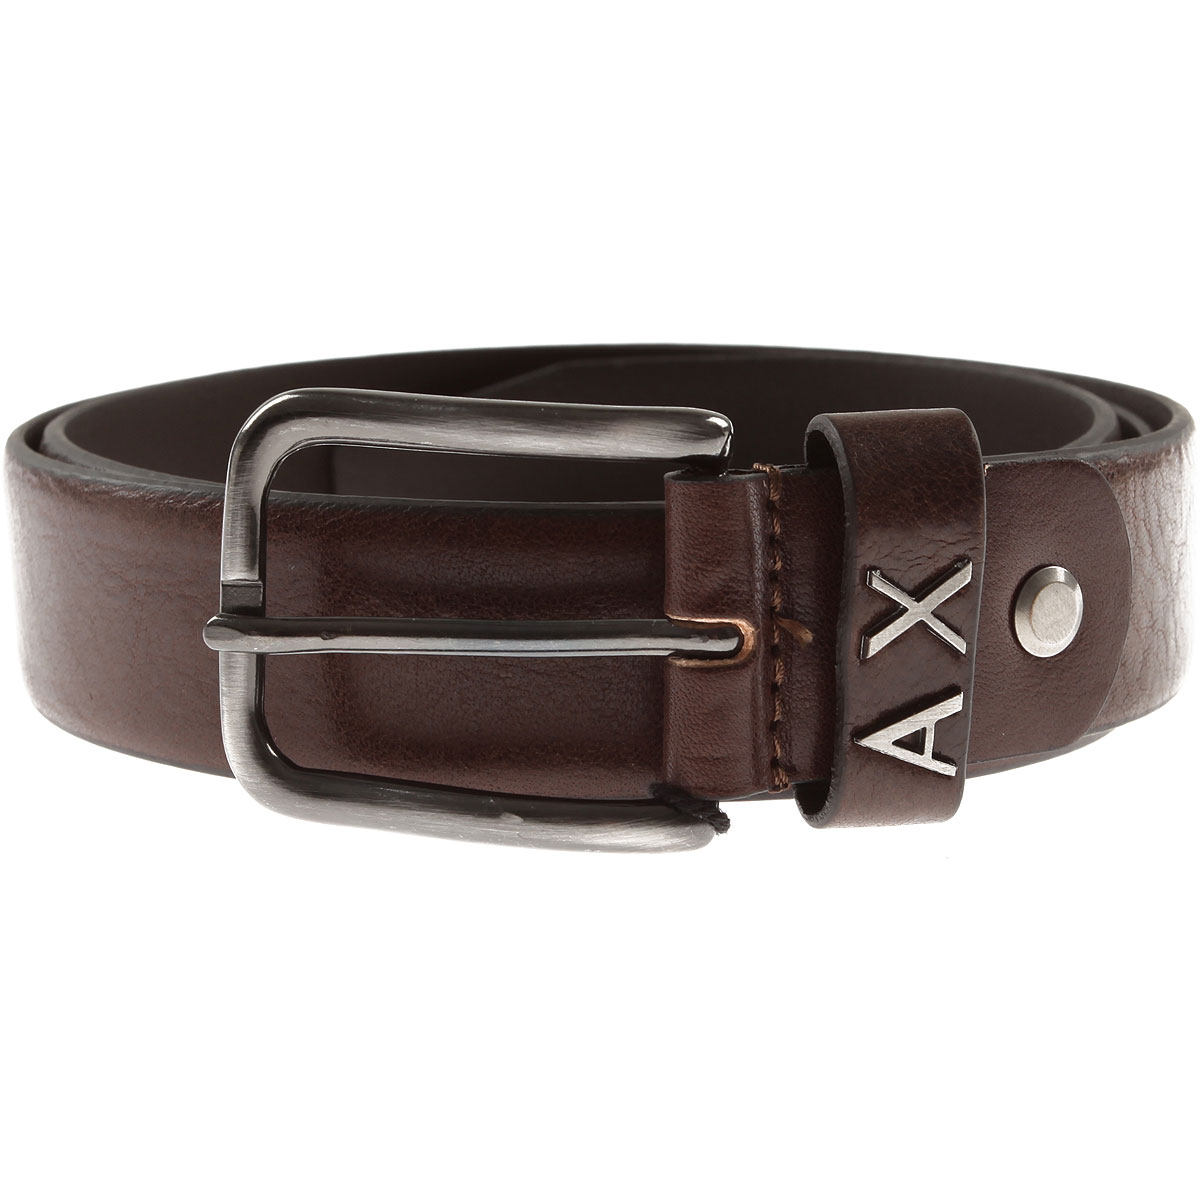 Image of Armani Jeans Mens Belts, Brown, leathera, 2017, 34 36 38 40